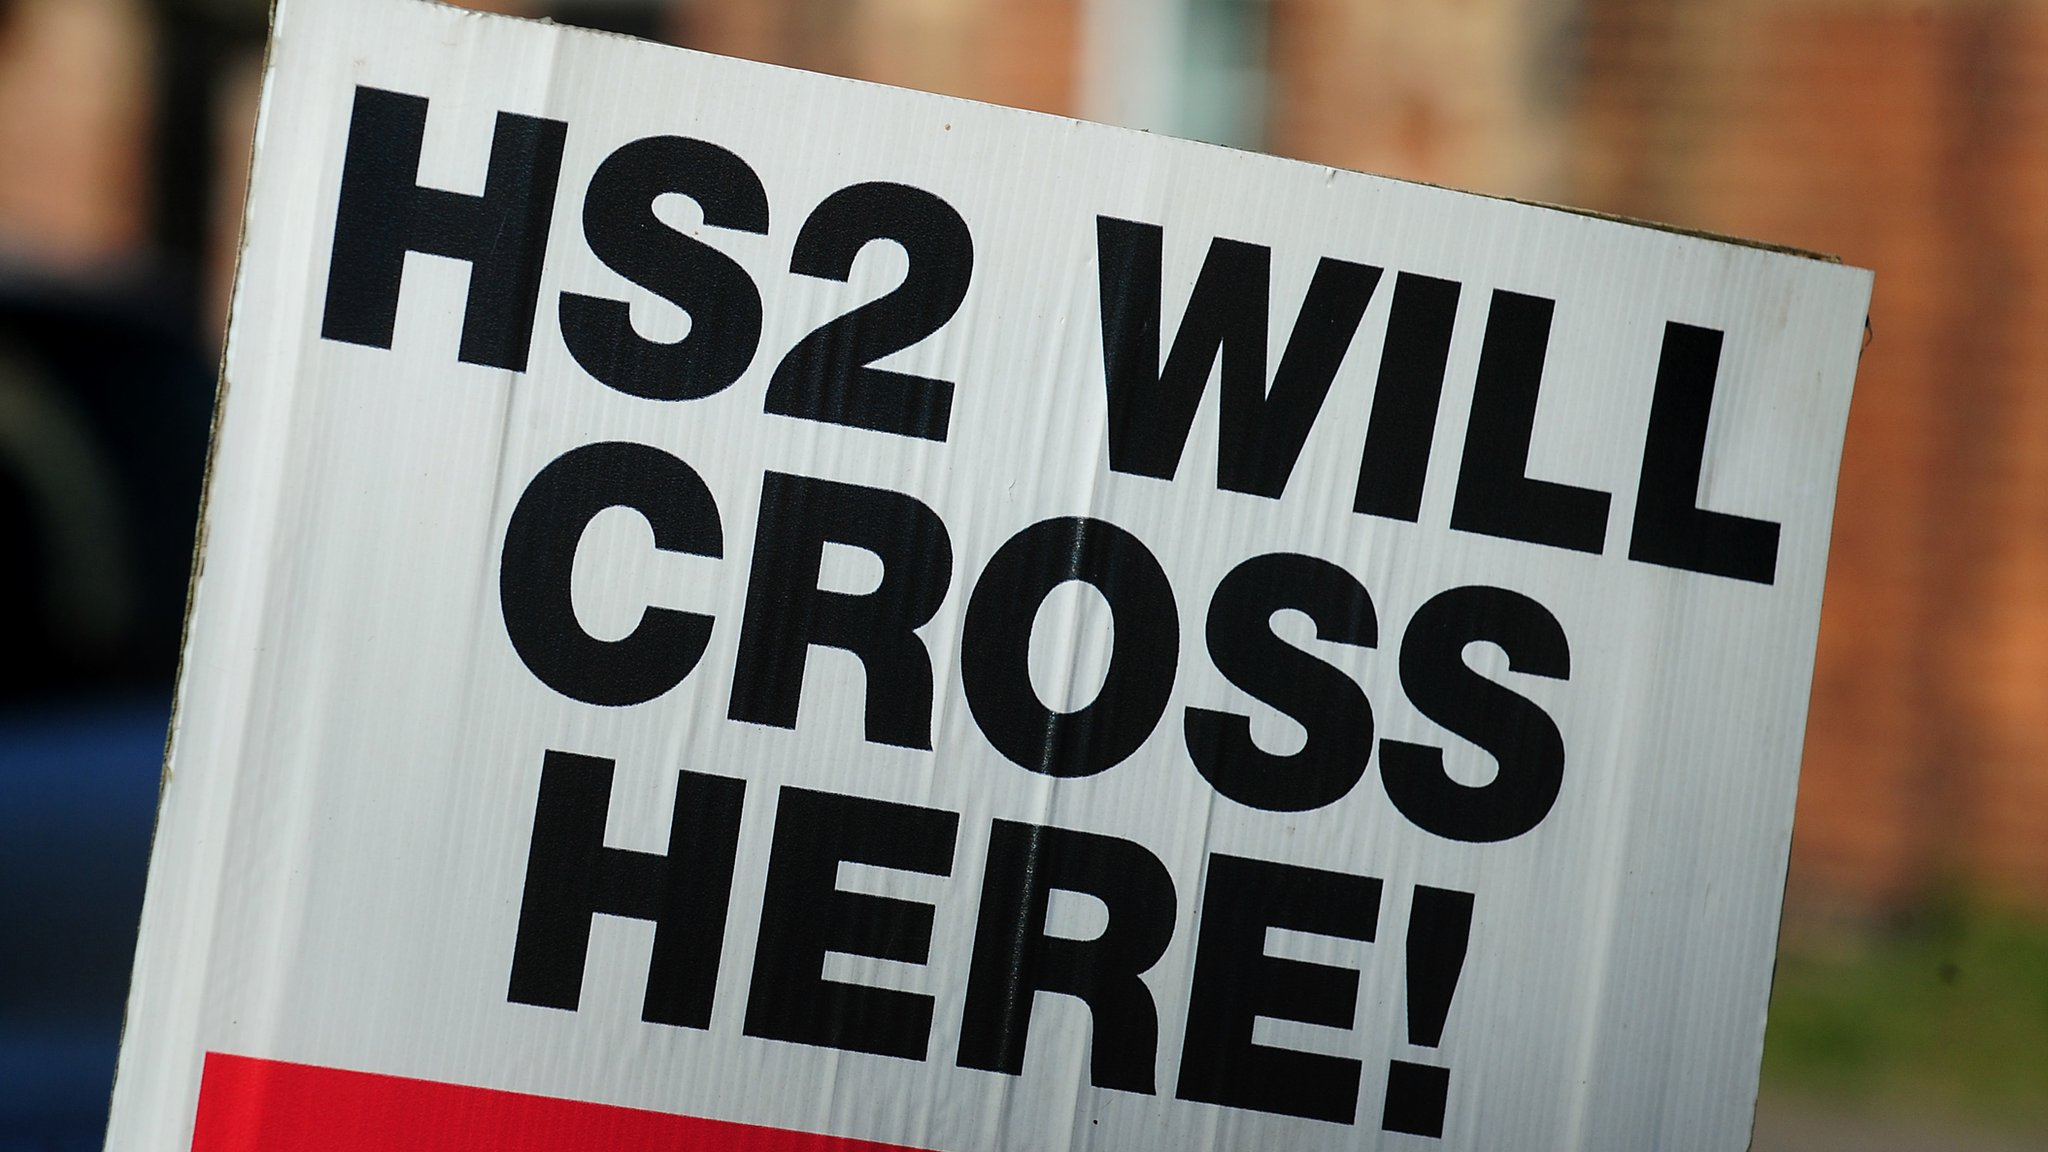 HS2 buys residential properties and land worth £600m